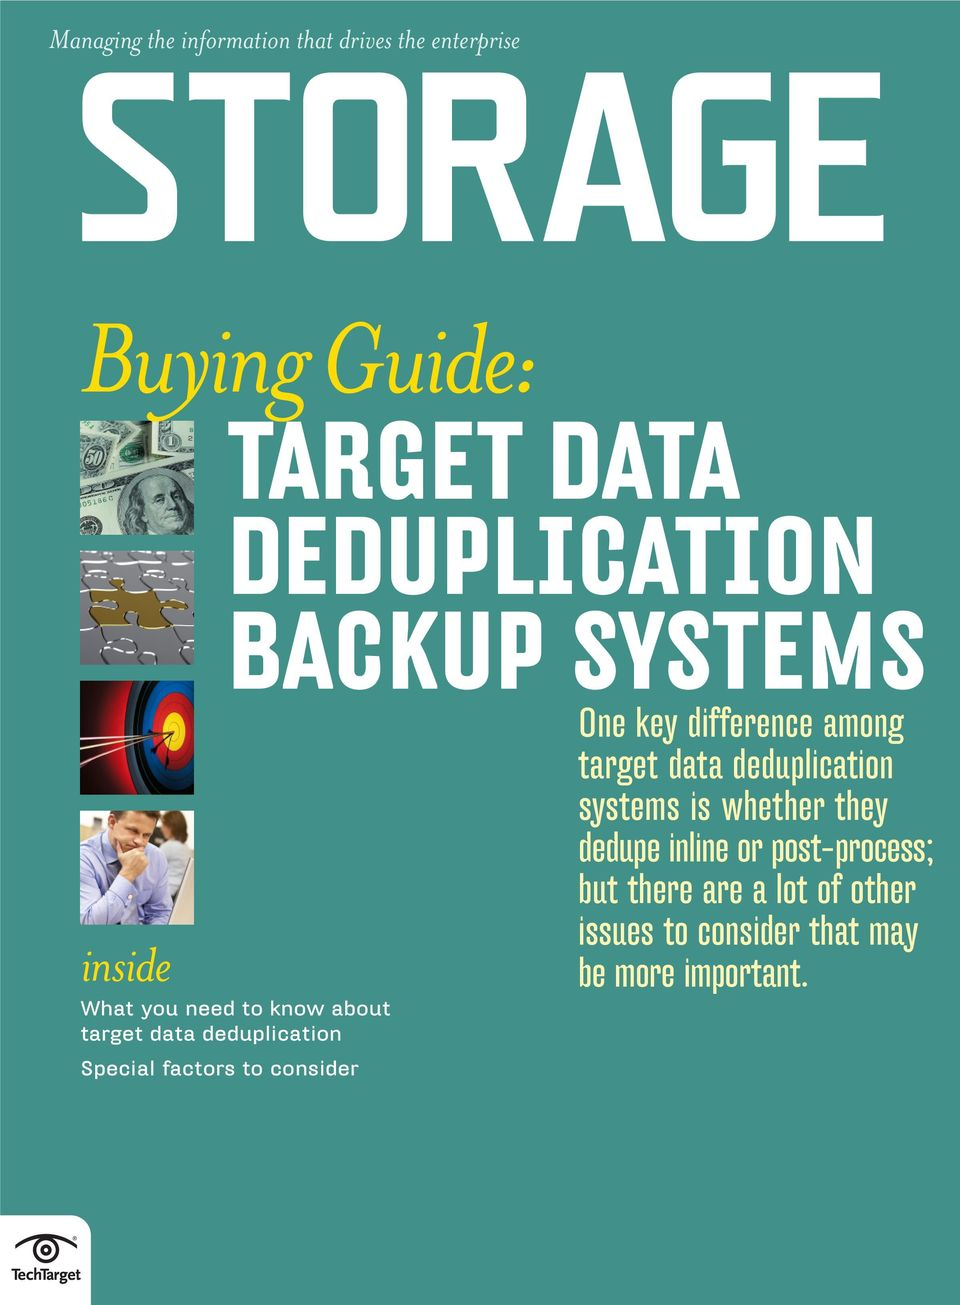 One key difference among target data deduplication systems is whether they dedupe inline